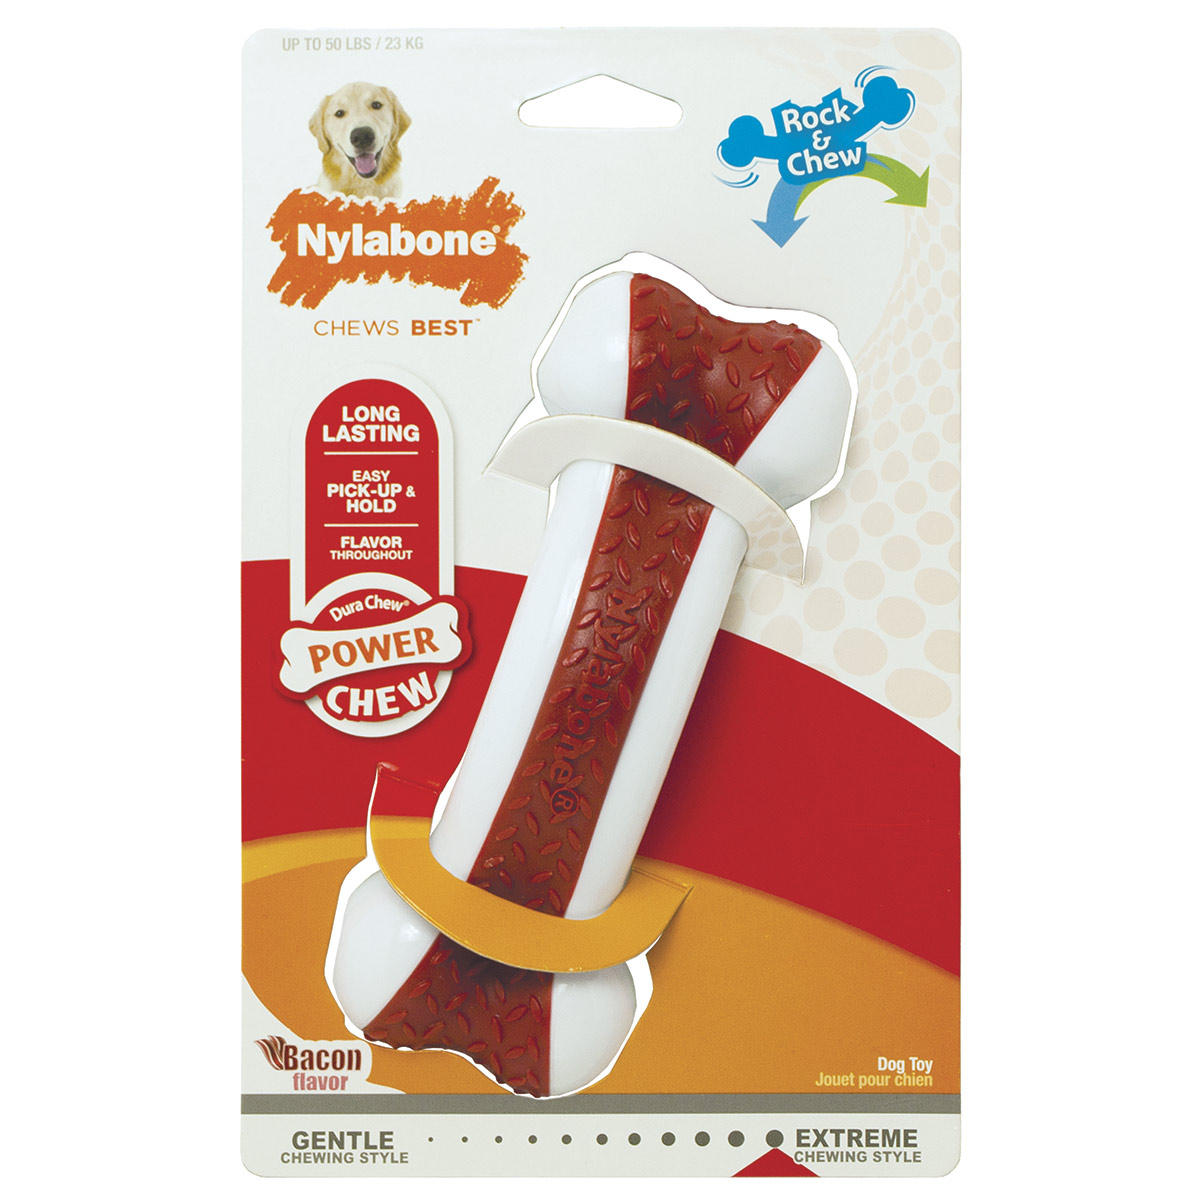 Nylabone Dura Chew Arch Bone for Dogs Giant Size - Rock & Chew Bacon Flavor